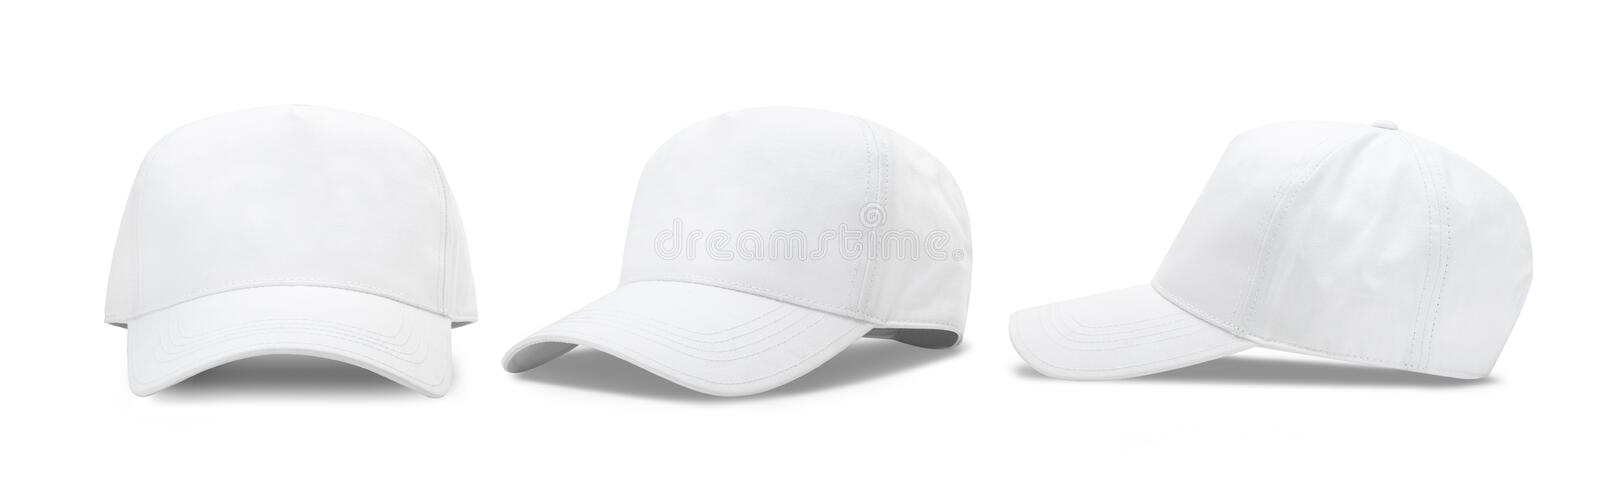 White baseball cap isolated on white background with clipping path. front and side view. White baseball cap isolated on white background with clipping path royalty free stock photos